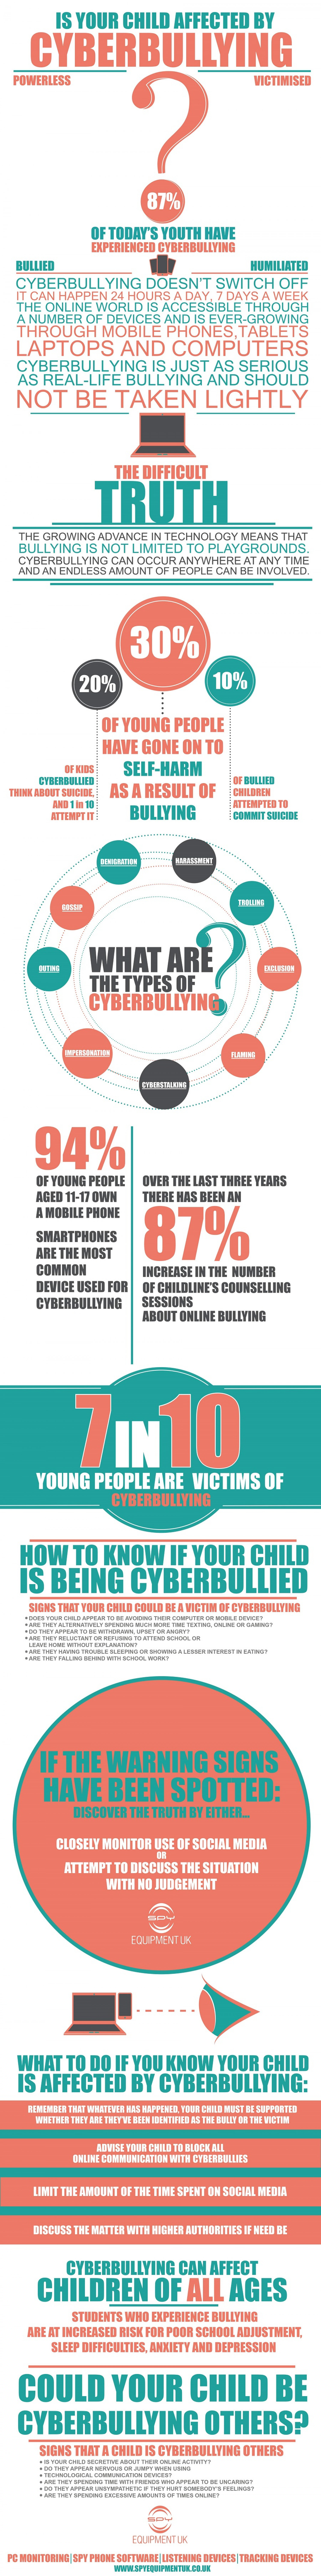 How to spot if your child is being cyber-bullied Infographic